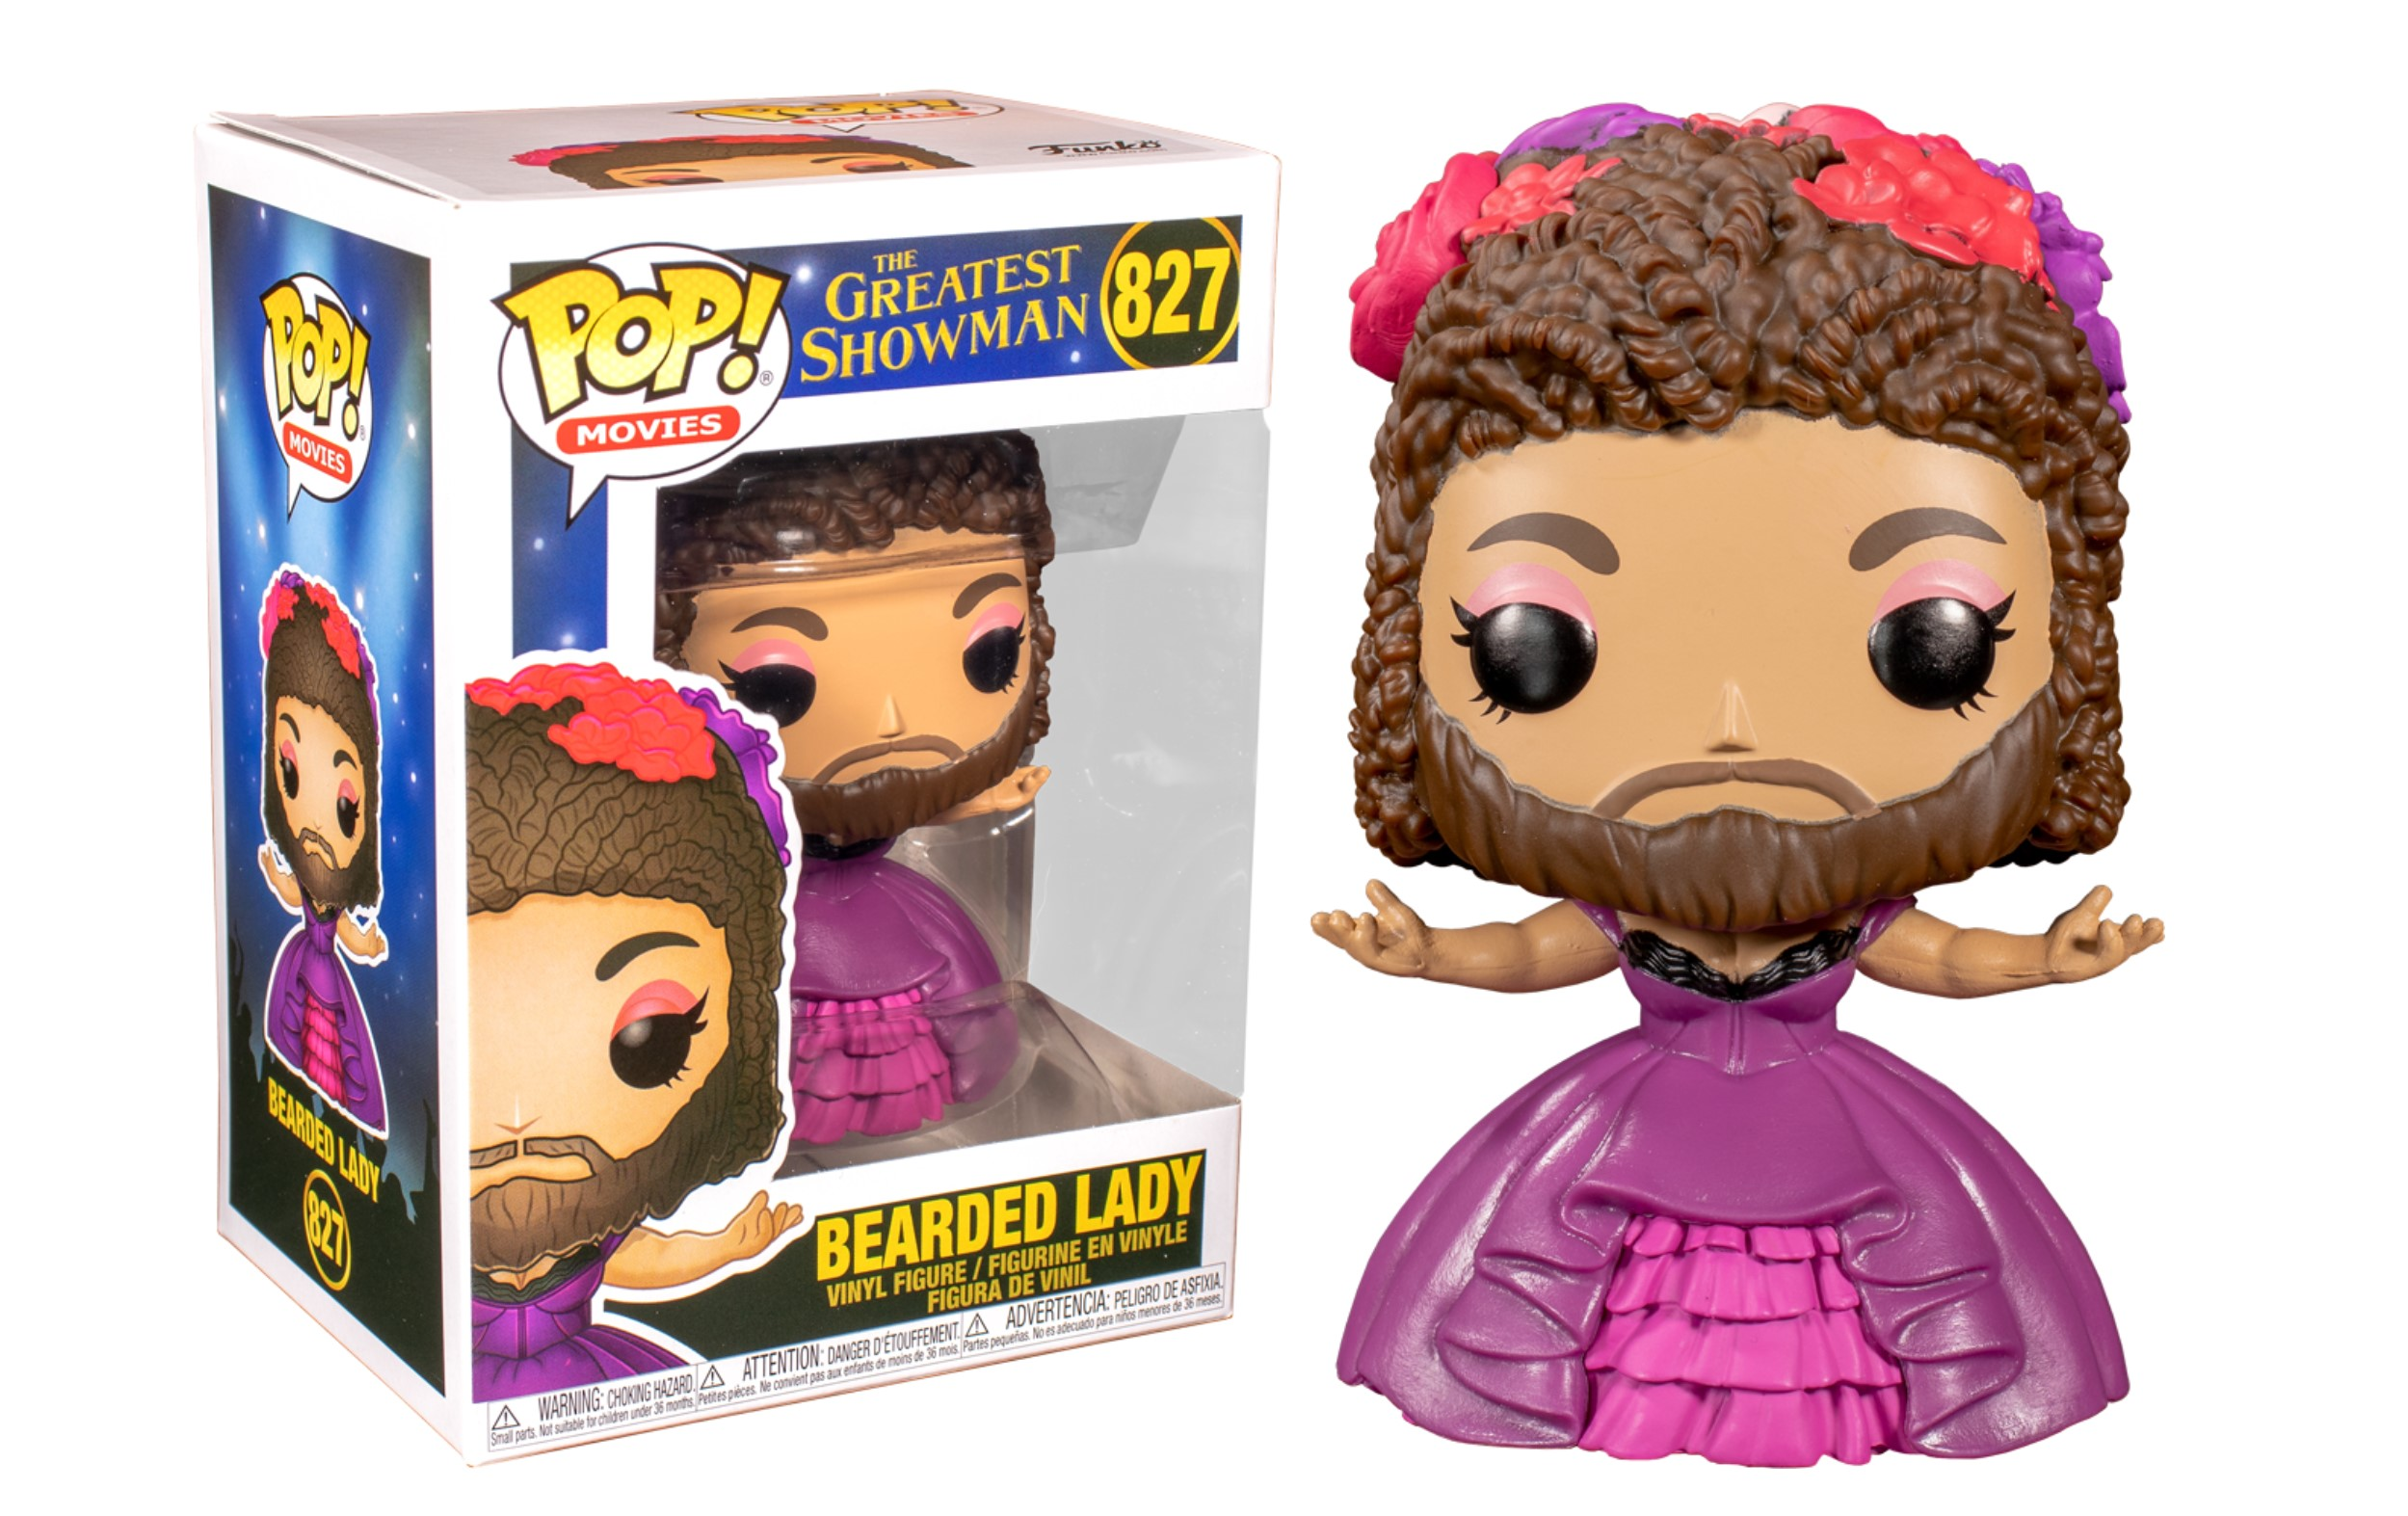 The Greatest Showman Bearded Lady 827 Funko POP Vinyl Figure